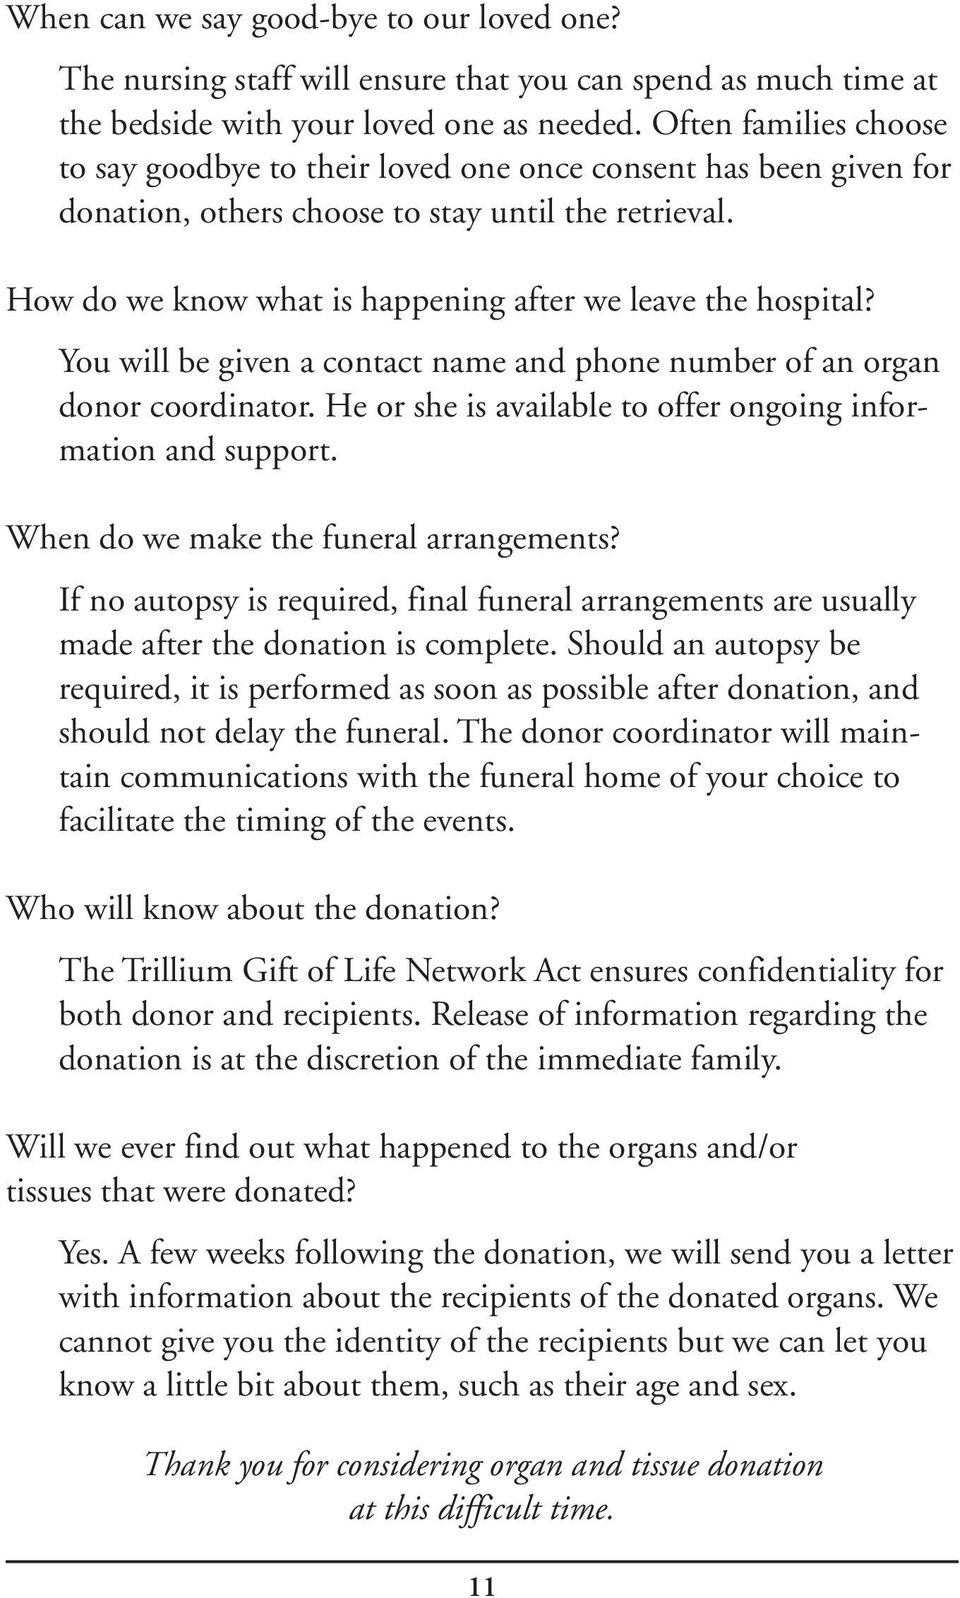 How do we know what is happening after we leave the hospital? You will be given a contact name and phone number of an organ donor coordinator.